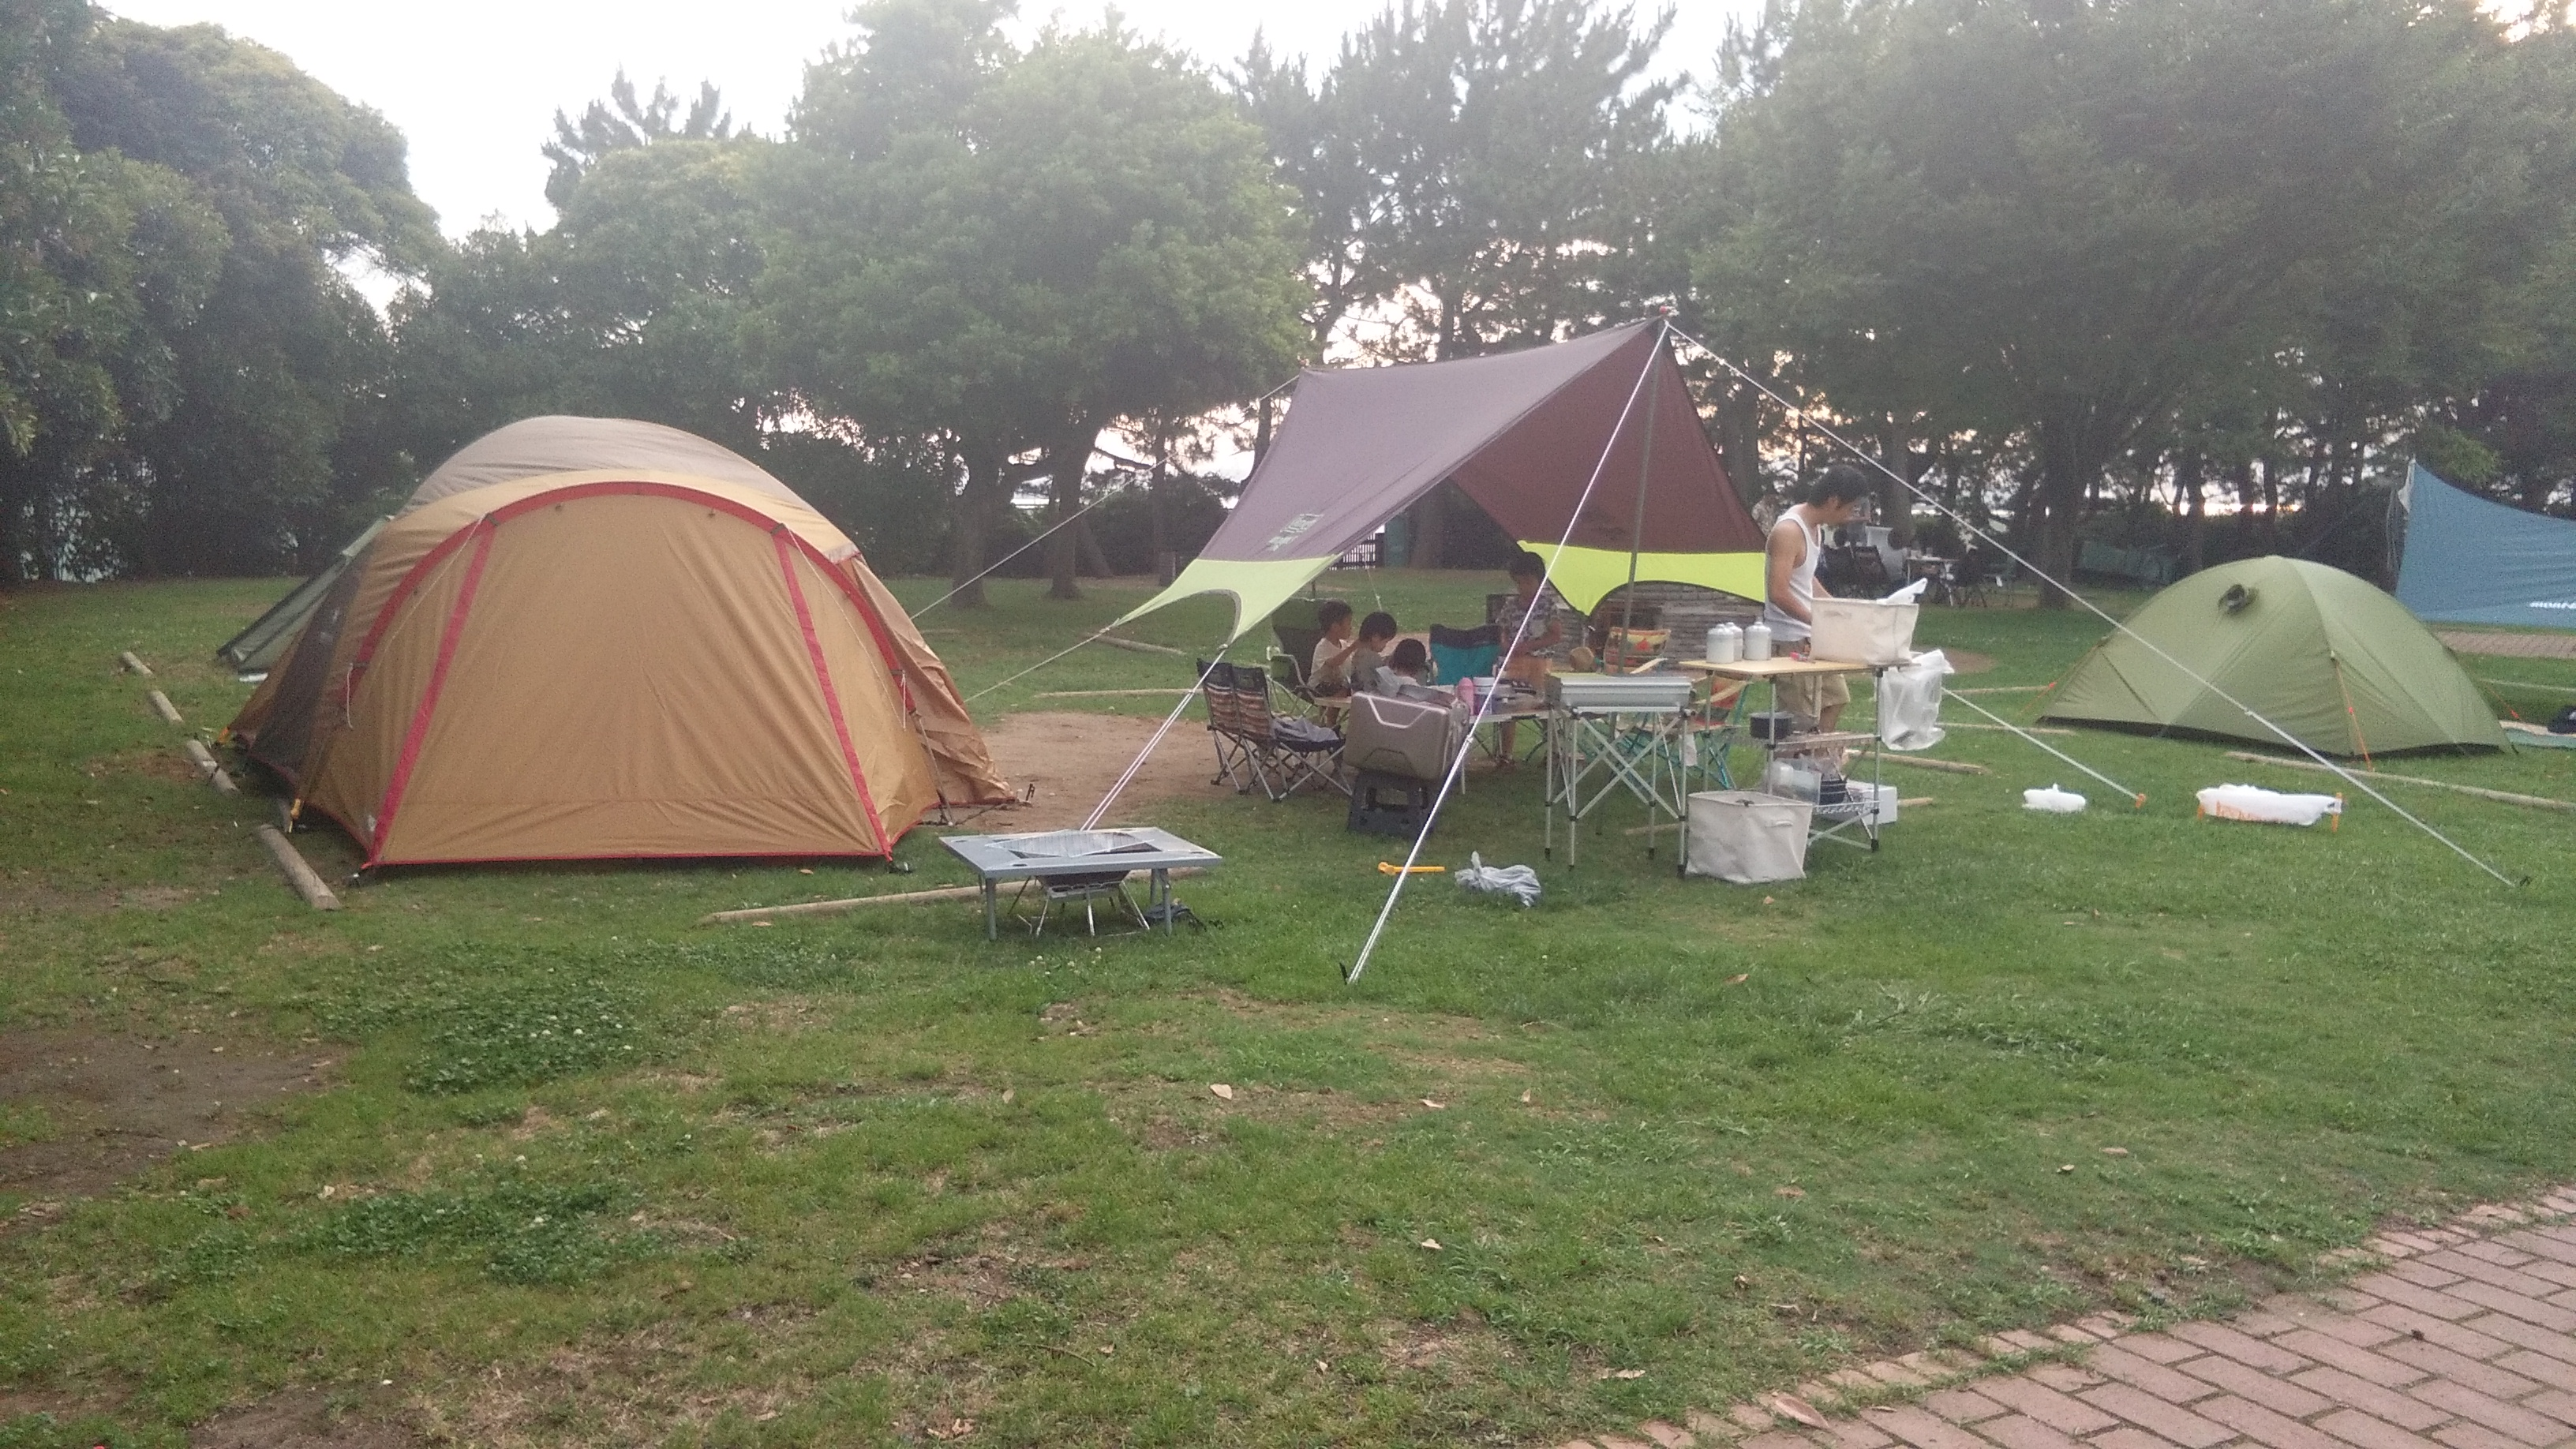 Japanese way of camping - bring your own house